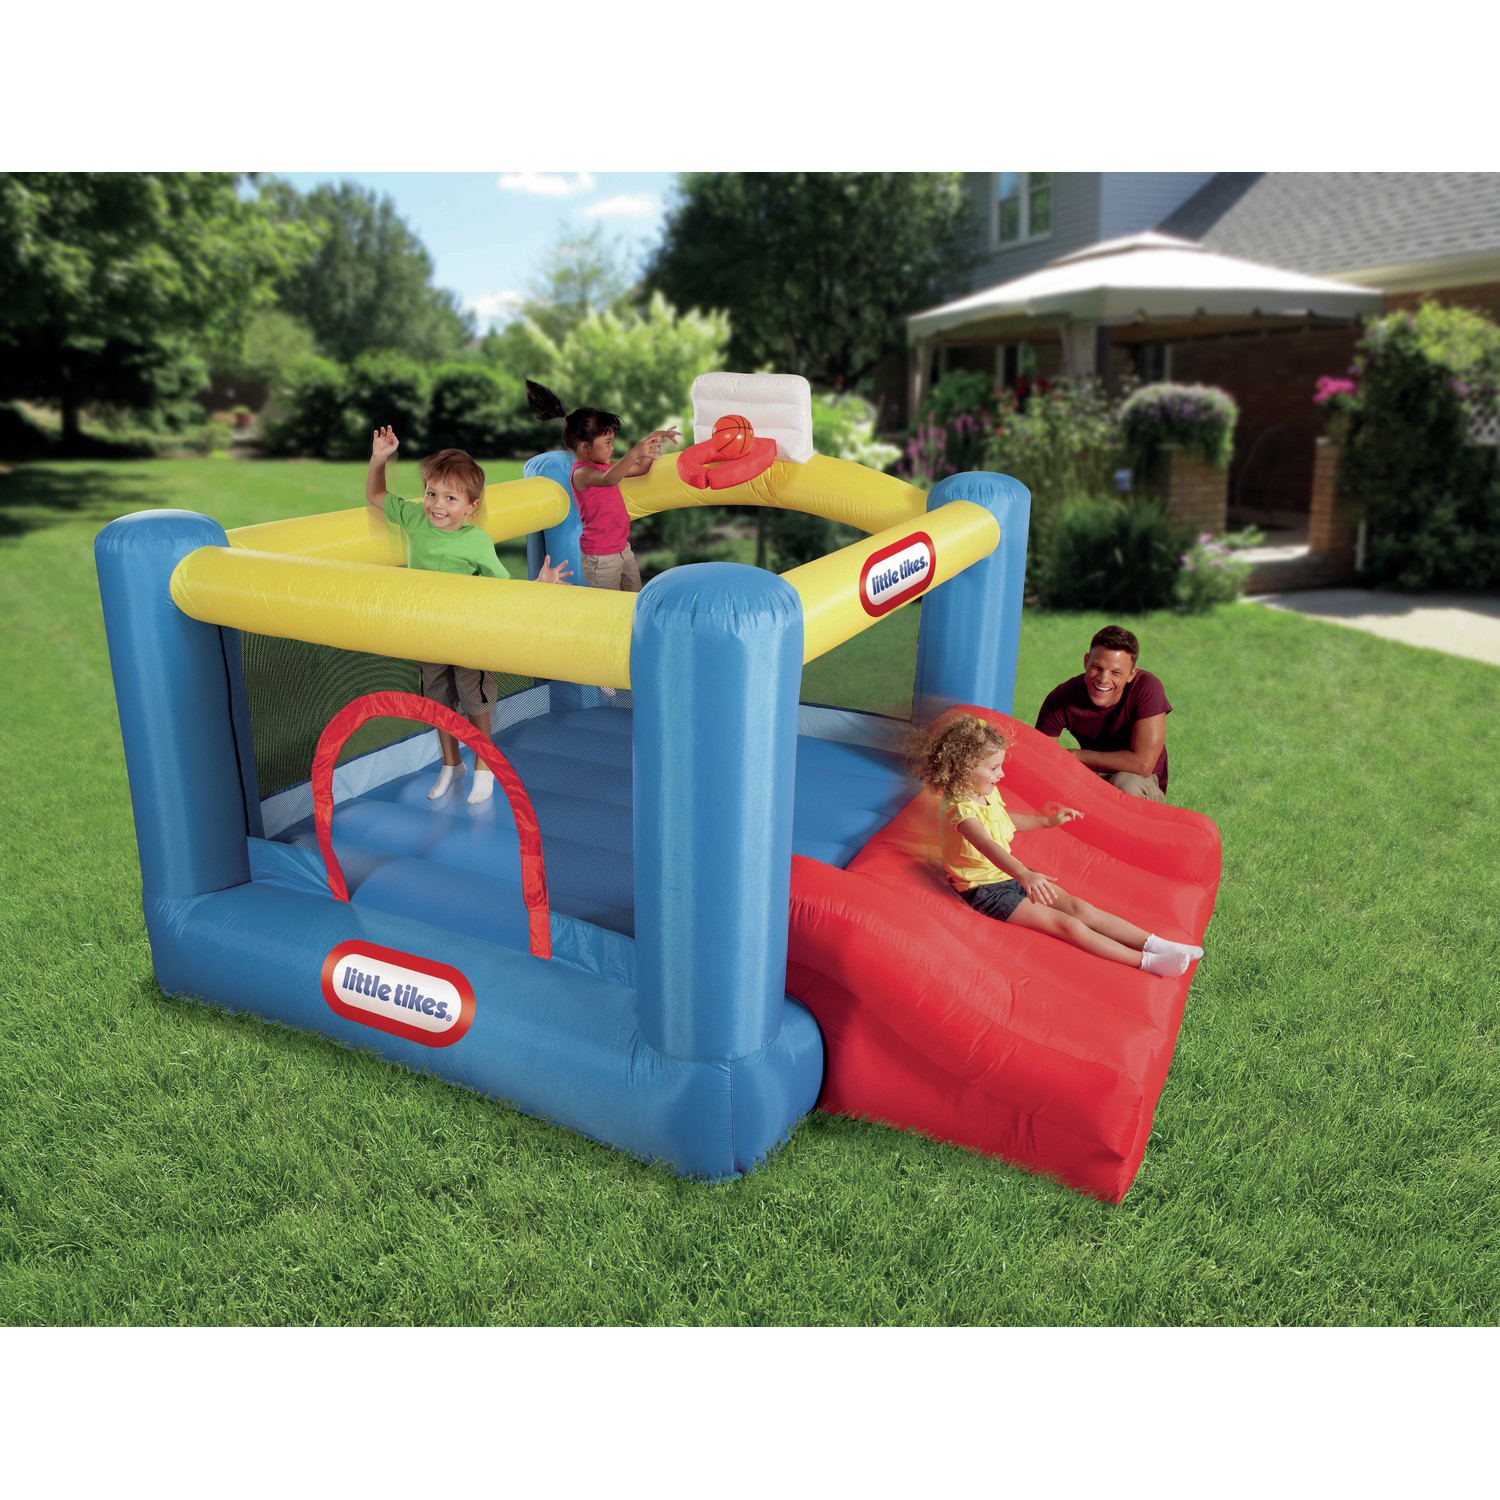 Fancy Little Tikes Bounce House For Play Yard Ideas: Charming Little Tikes Bounce House Made Of Caoutchouc With Red Jump Slide For Play Yard Ideas